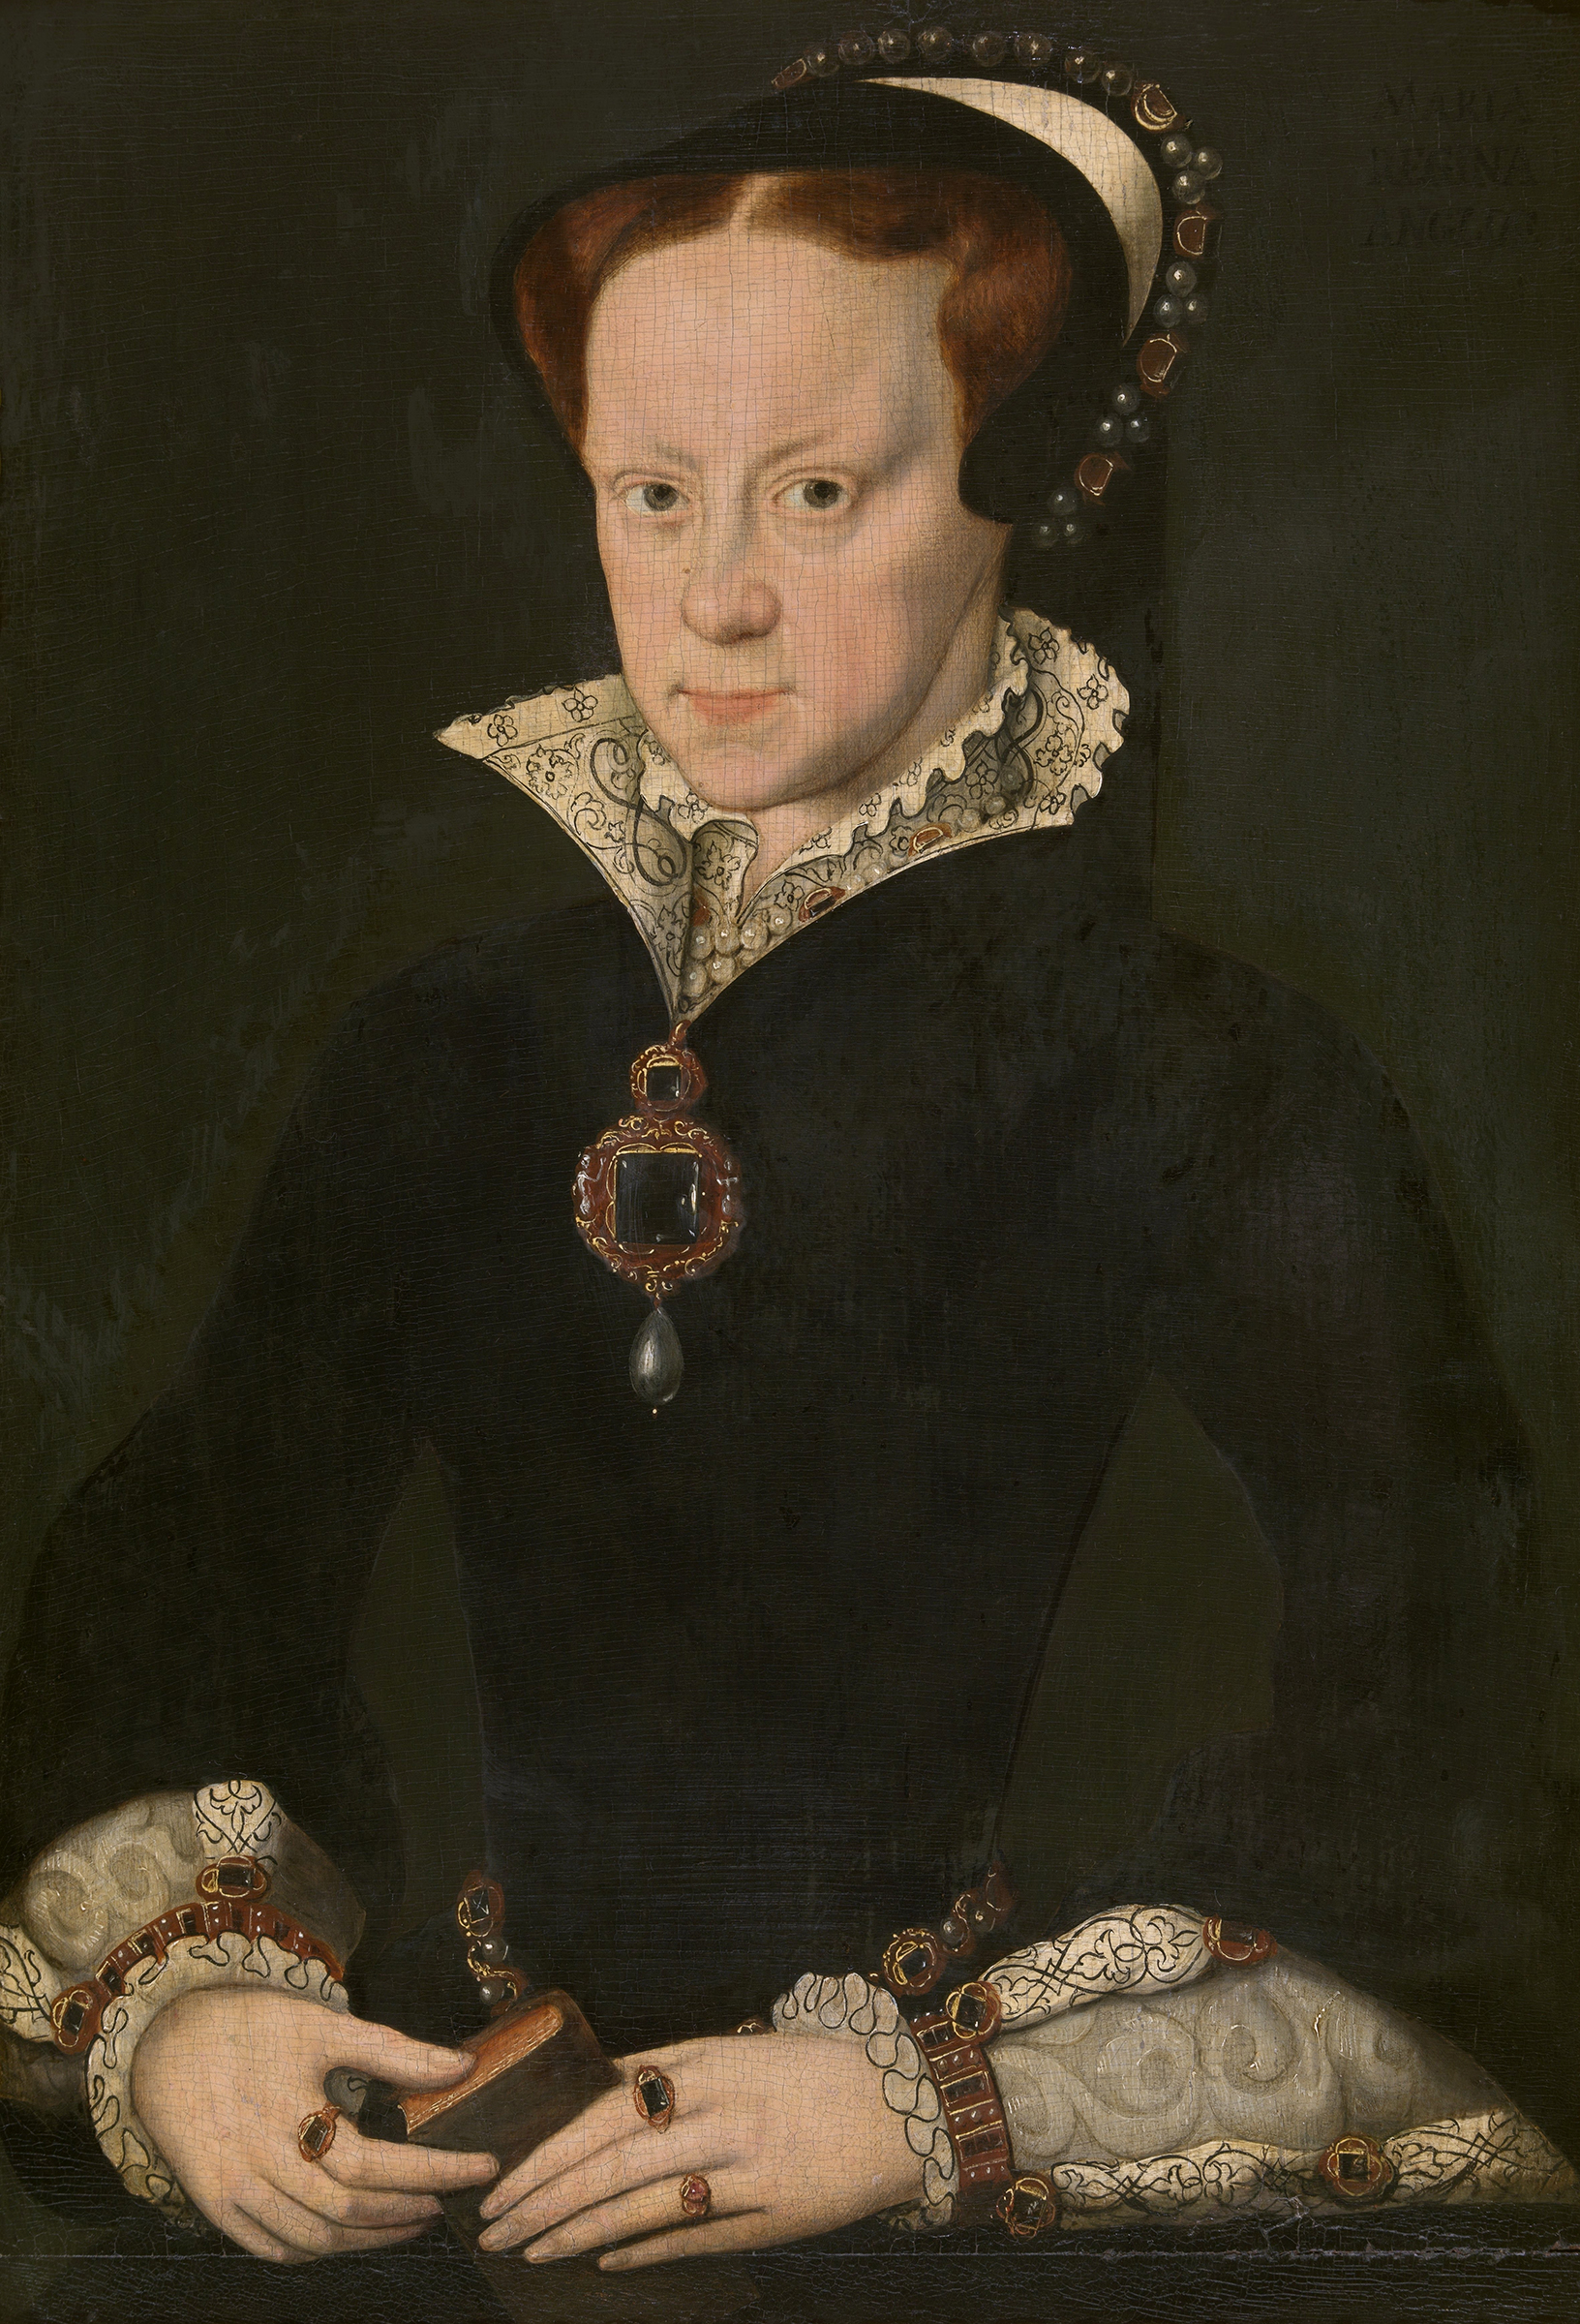 Portrait of Mary I (1516-1558), Queen of England and Ireland (1553-1558), Queen consort of Naples (1554-1558), Queen consort of Spain (1556-1558) | Portraits of Kings